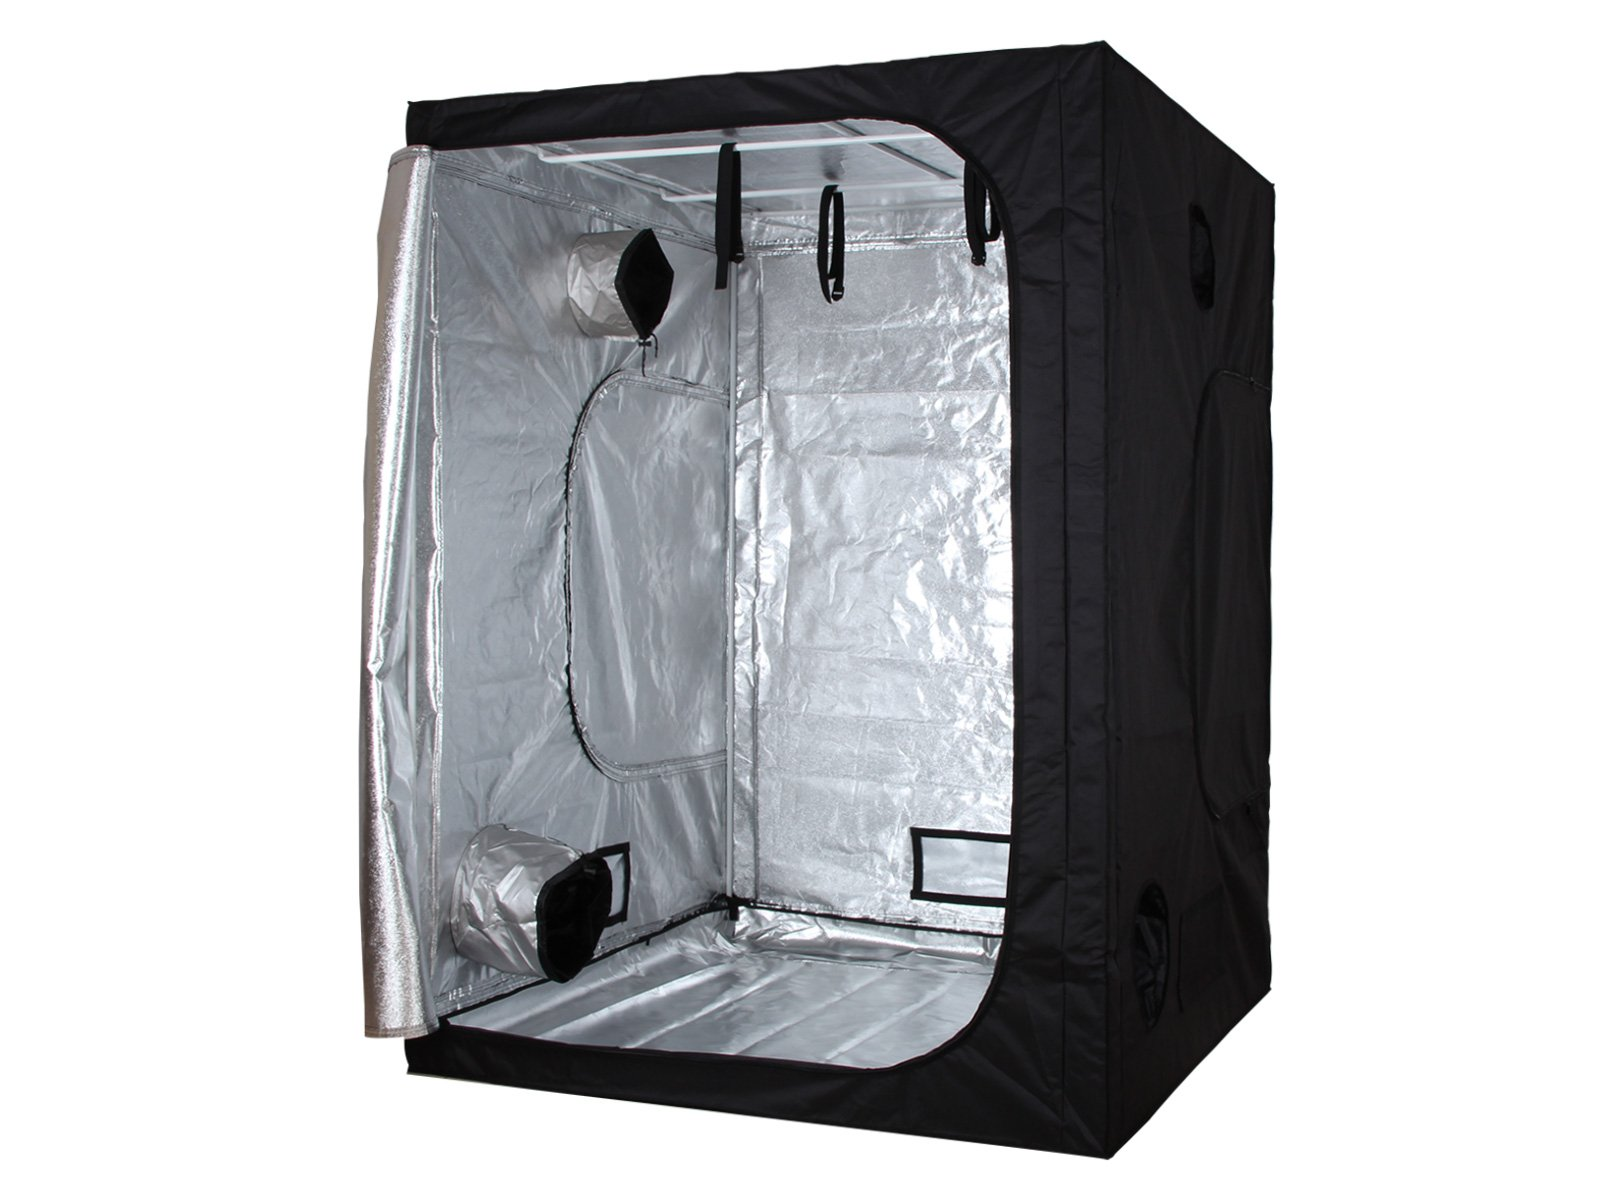 60''x60''x78'' Indoor Grow Tent Room Reflective Mylar Hydroponic Non Toxic Hut 600D 5'x5'x6.5' HX-006078-P1 by Bourkeliving